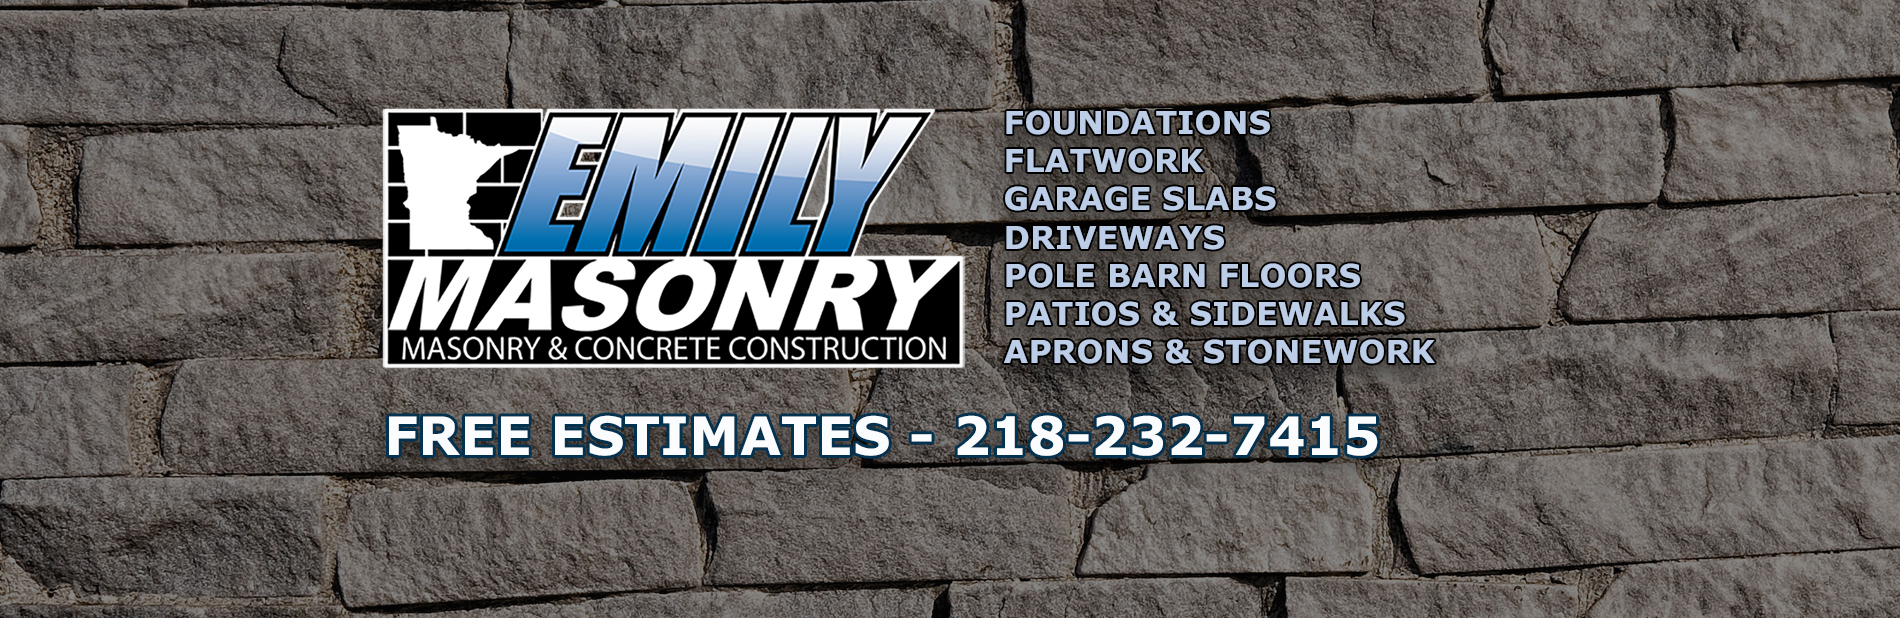 Emily Masonry And Concrete Construction Company